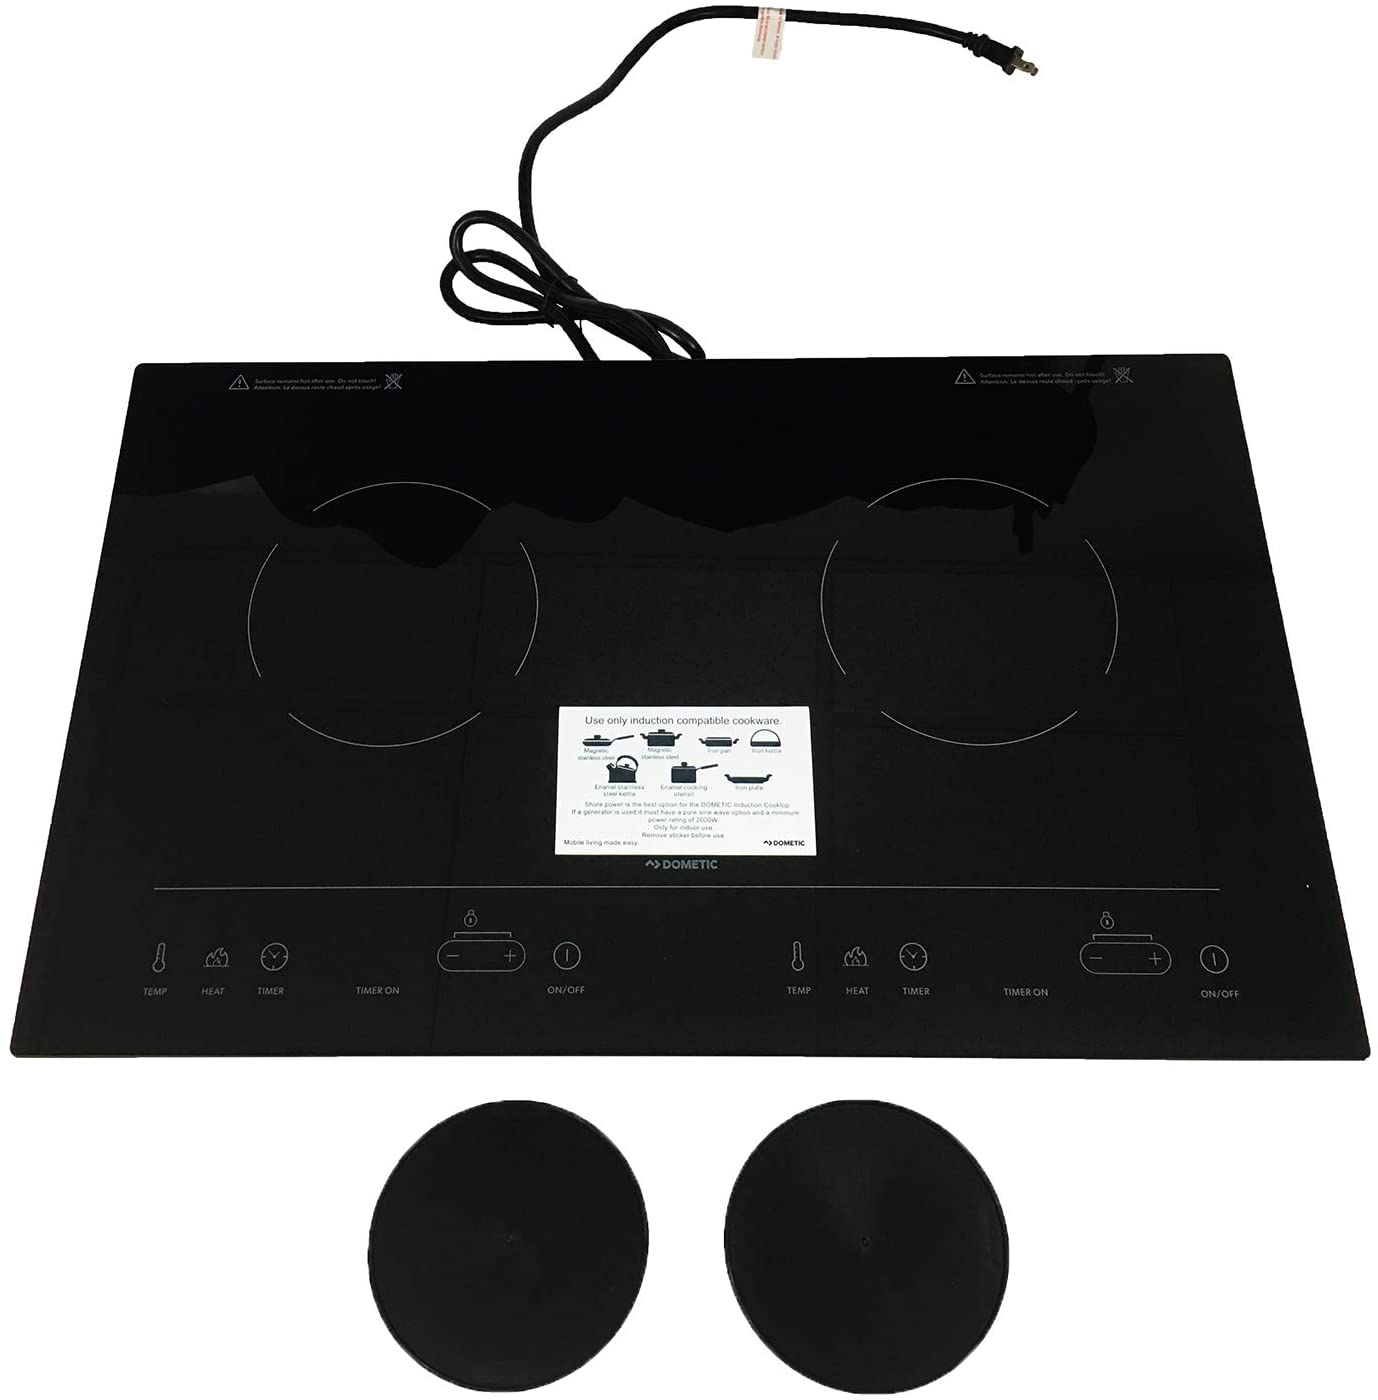 Dometic 55889 CI21 Induction Cooktop